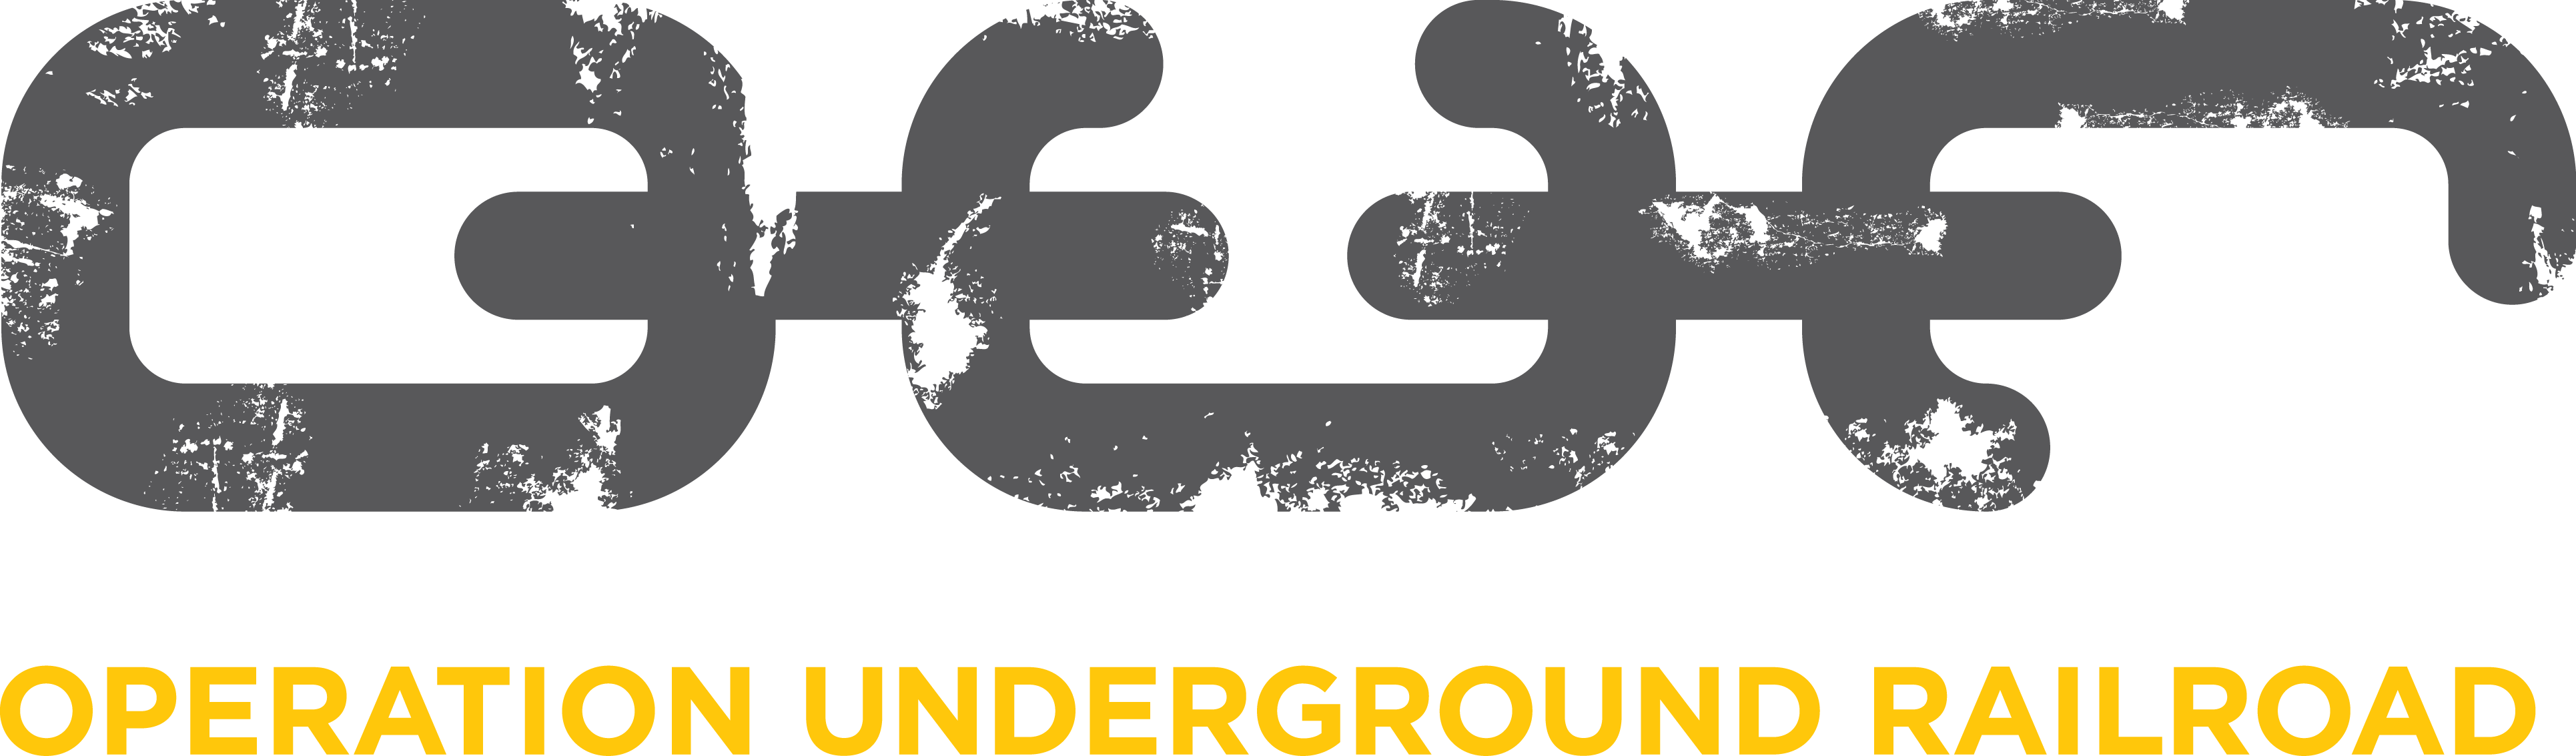 operation_underground_railroad_logo